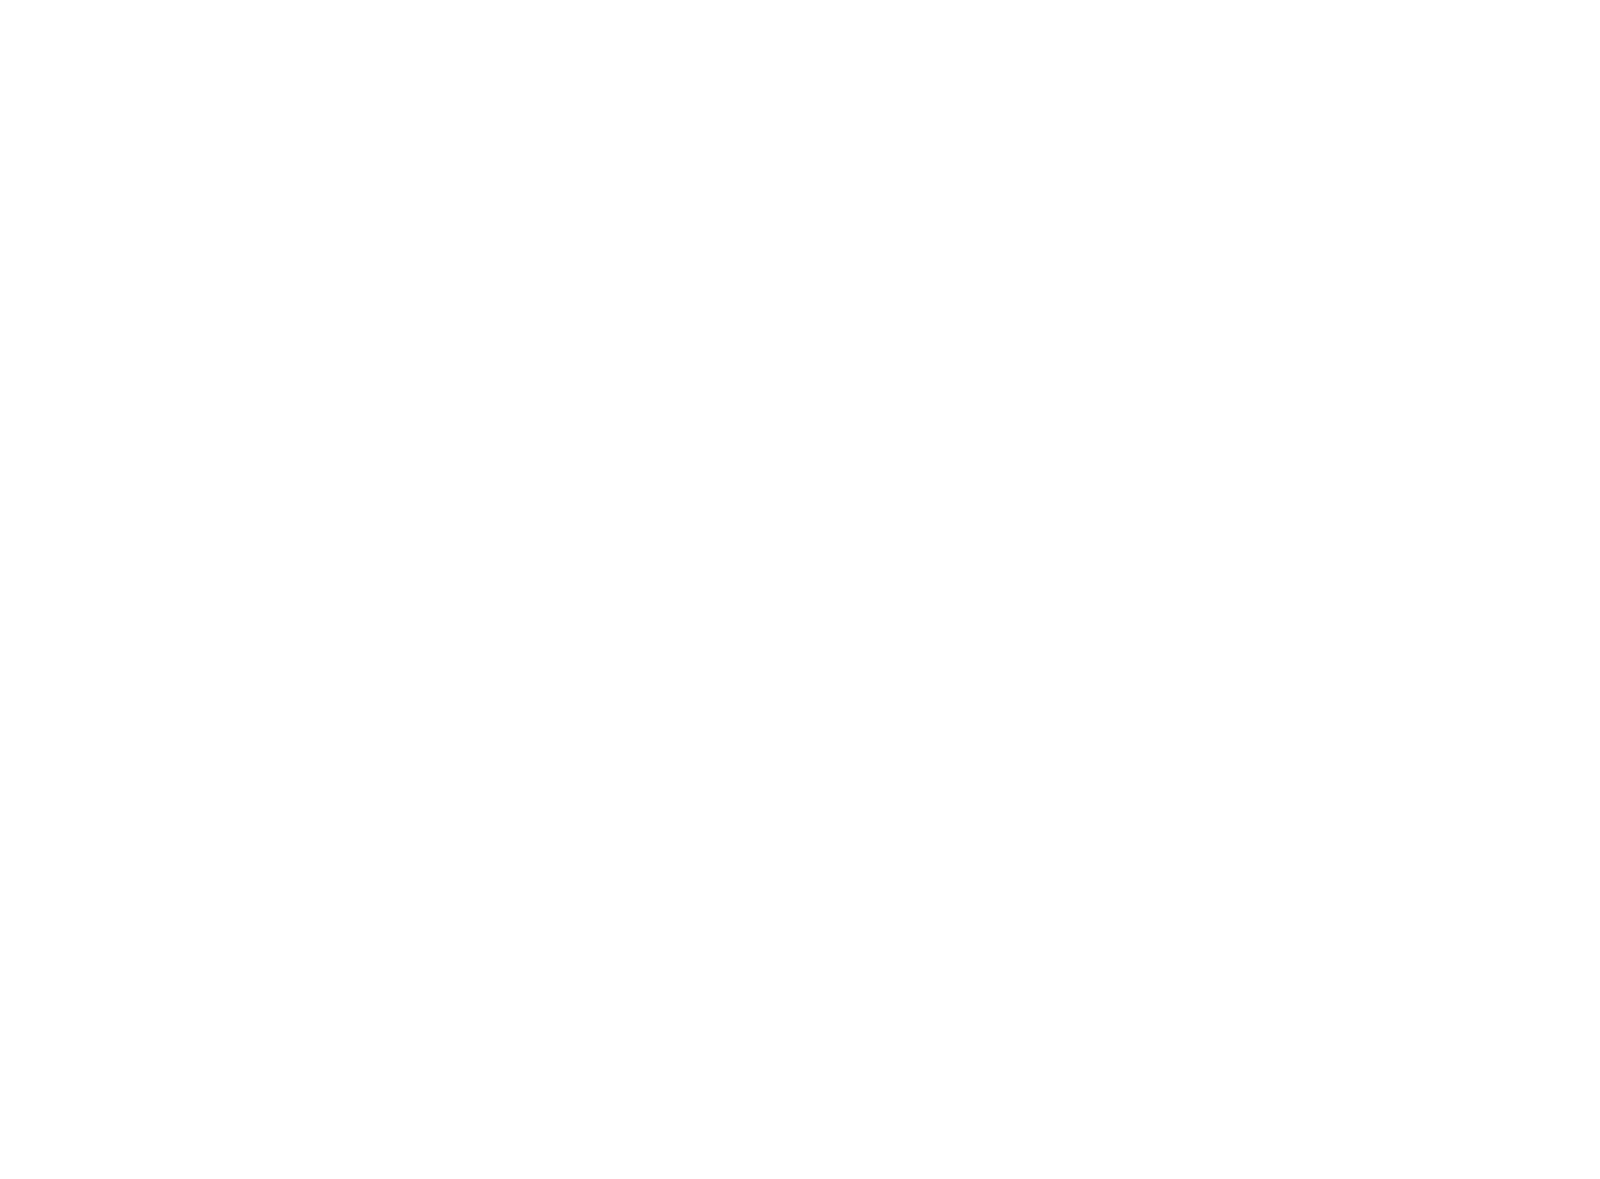 CREATIONS-WHITE-J-W-NEW-LOGO